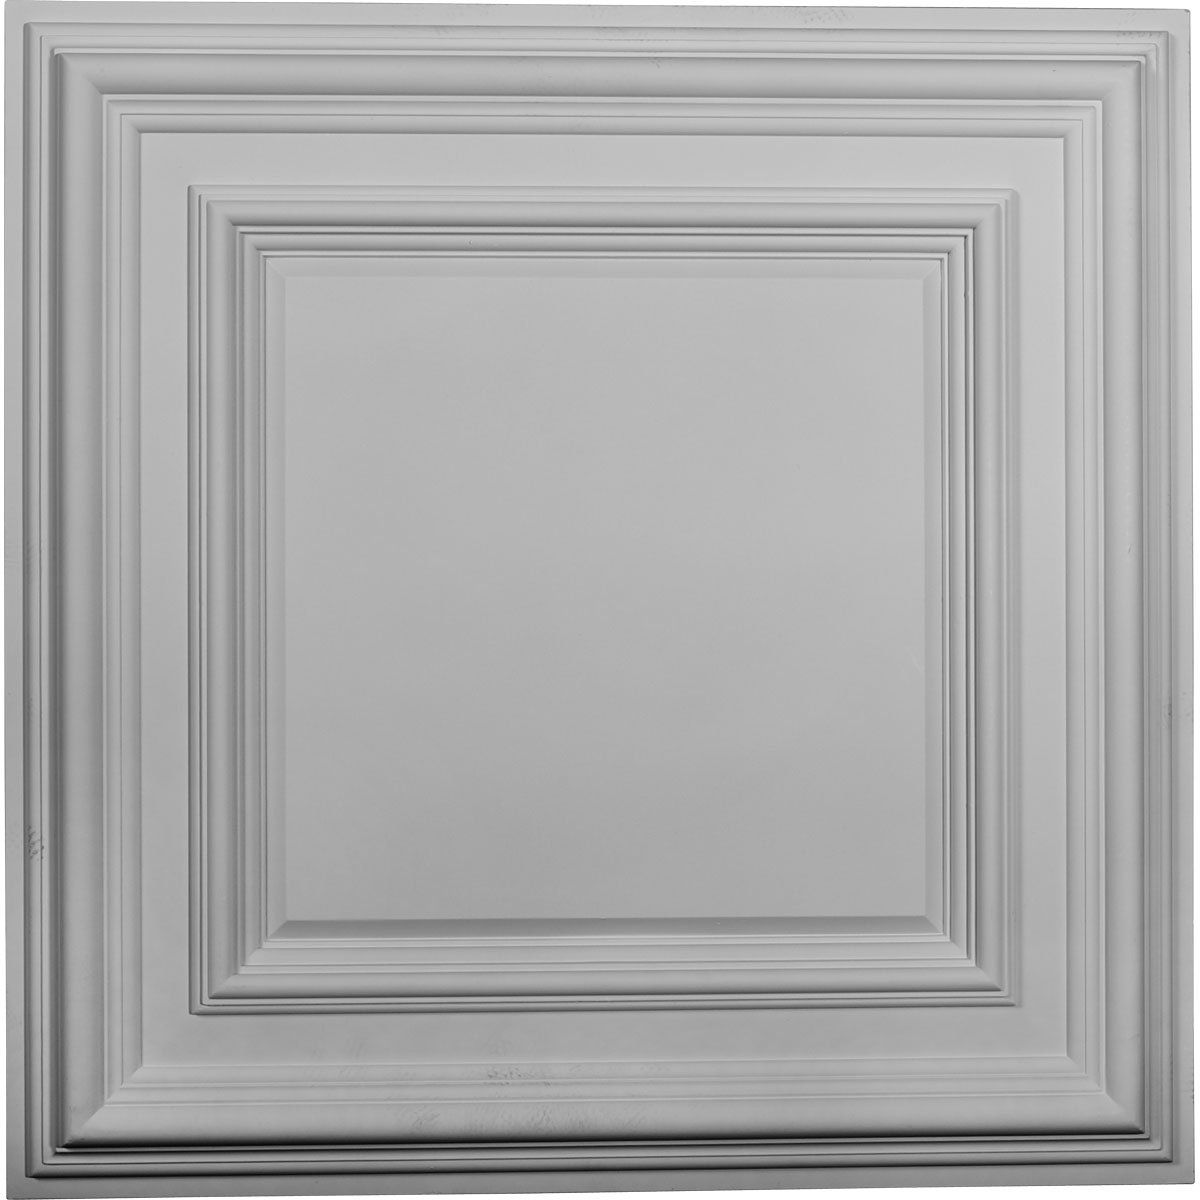 Ekena Millwork CT24CL 23 3/4-Inch OD x 1 5/8-Inch P Classic Square Ceiling Medallion